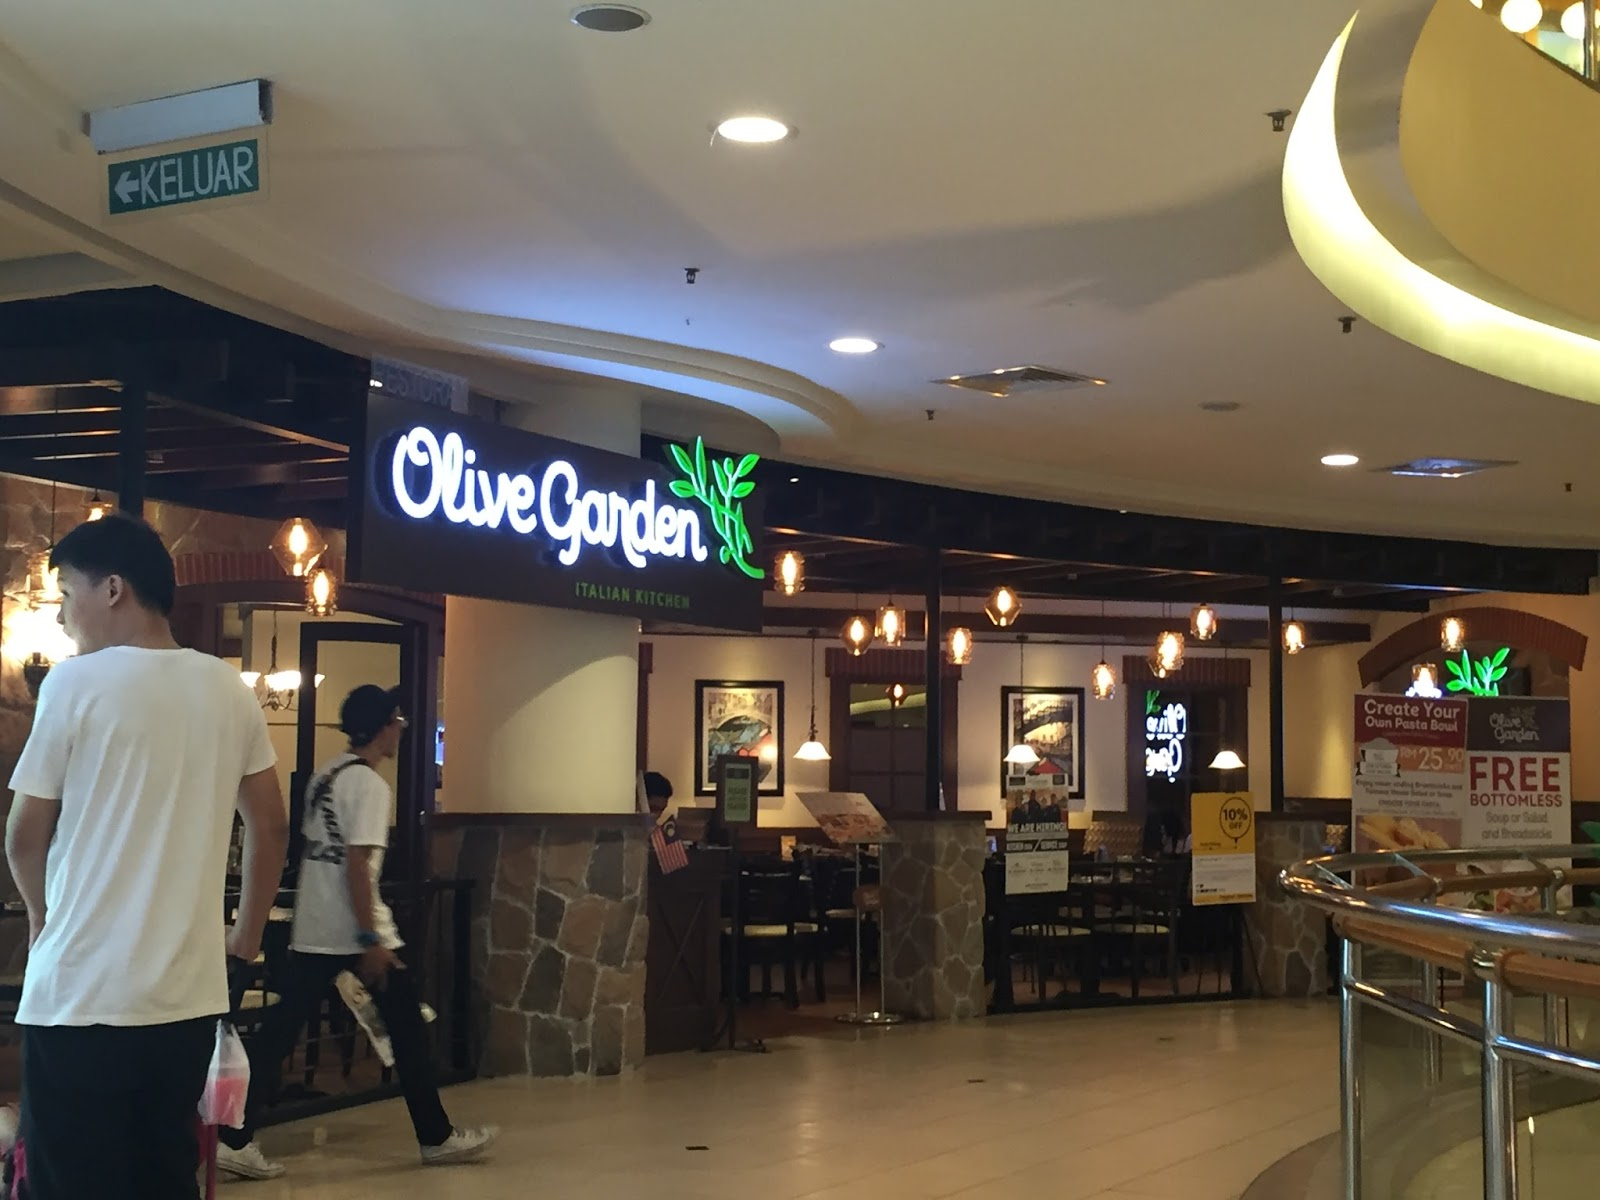 In Malaysia There Are Curly Two Olive Garden Restaurants The First One Is Midvalley Kuala Lumpur And Second Shah Alam Selangor